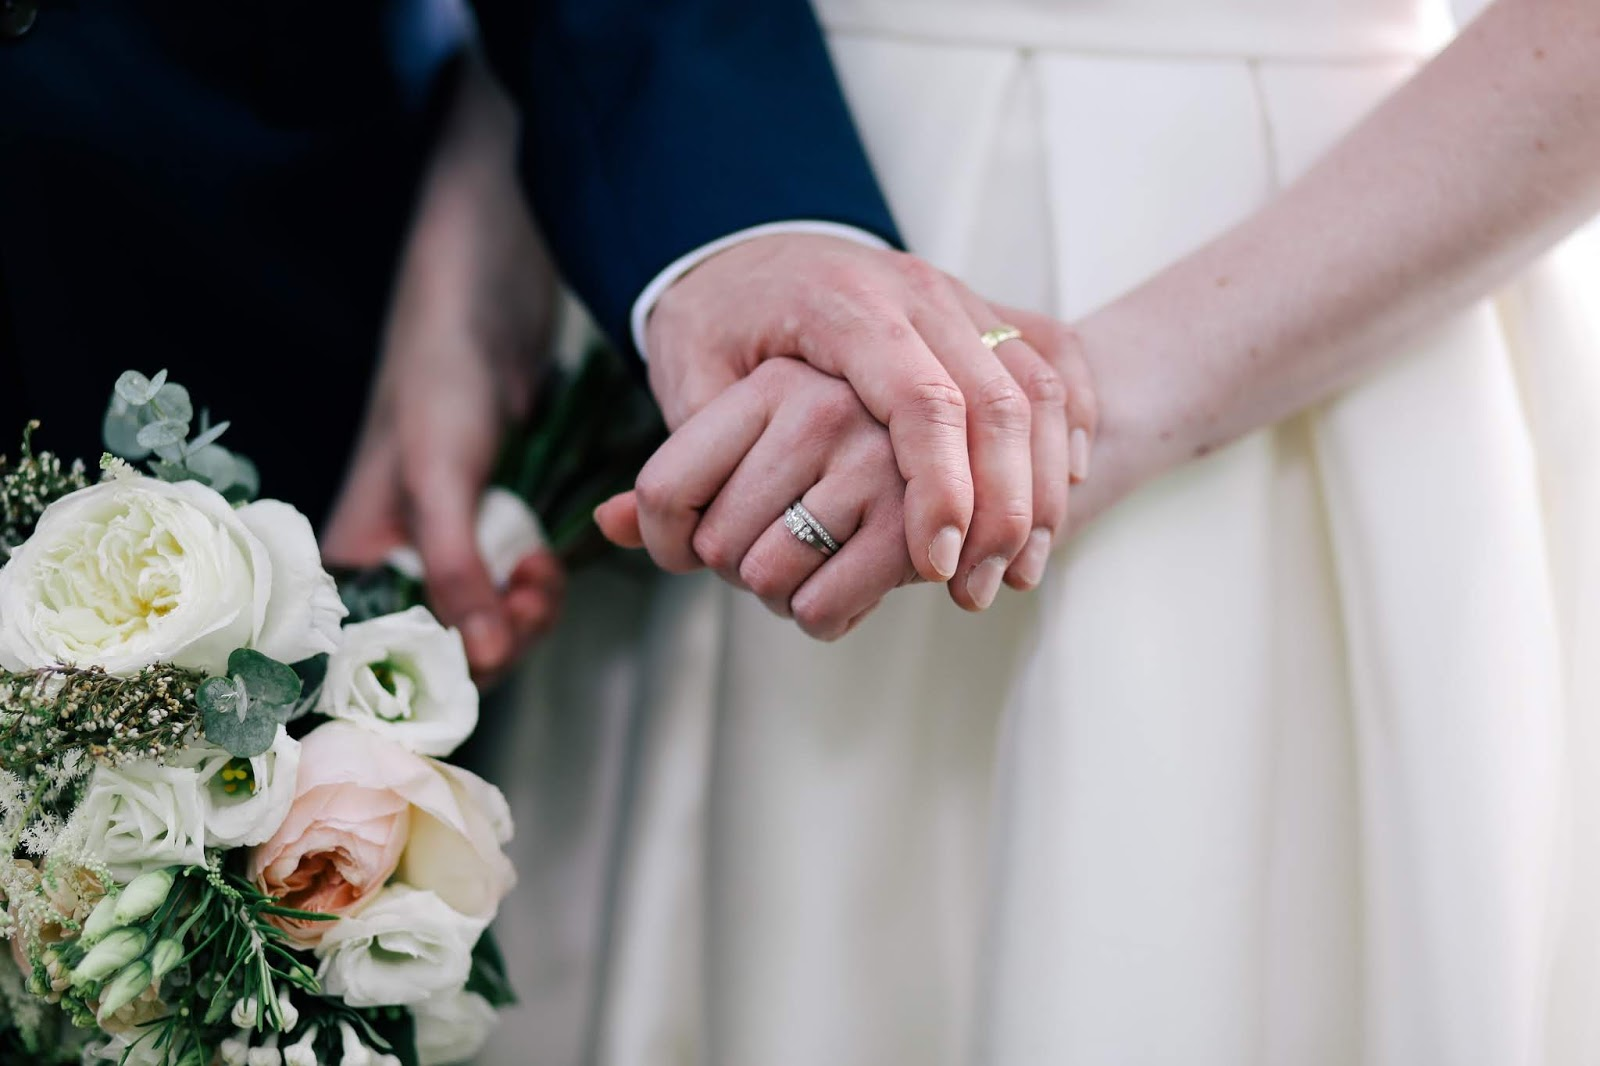 cheap wedding rings under £200